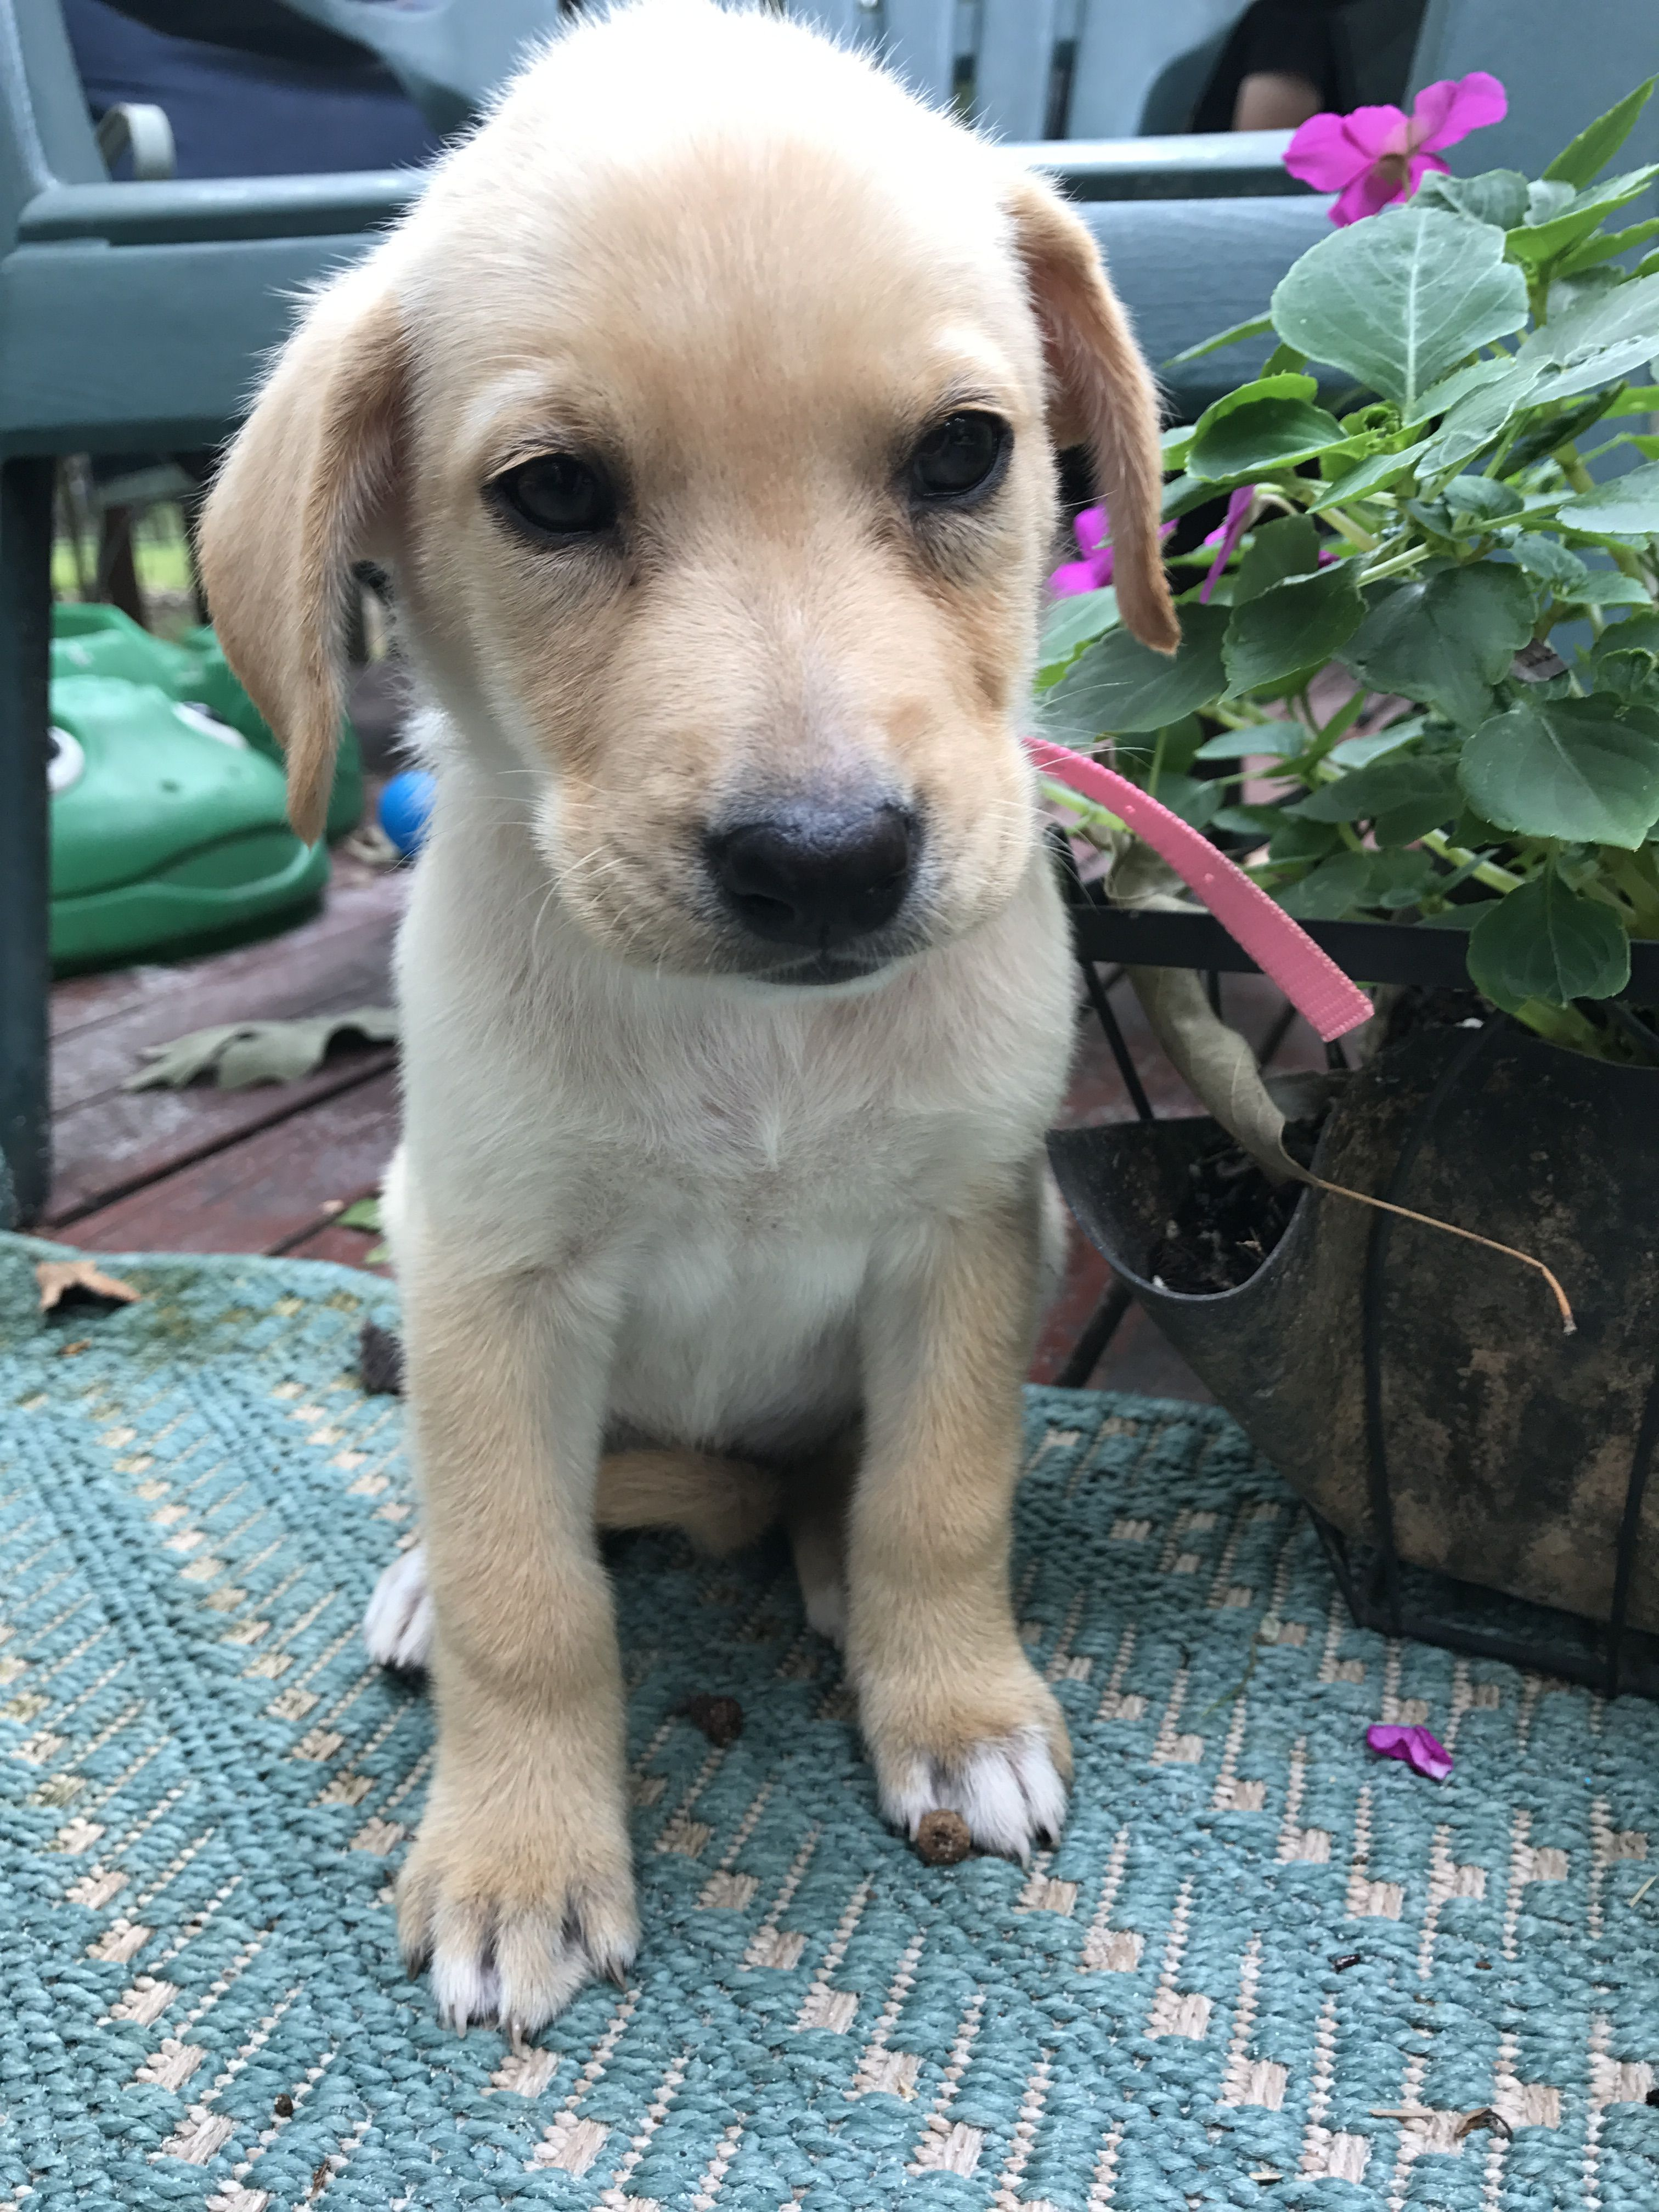 Labbe dog for Adoption in Forest, VA. ADN621335 on